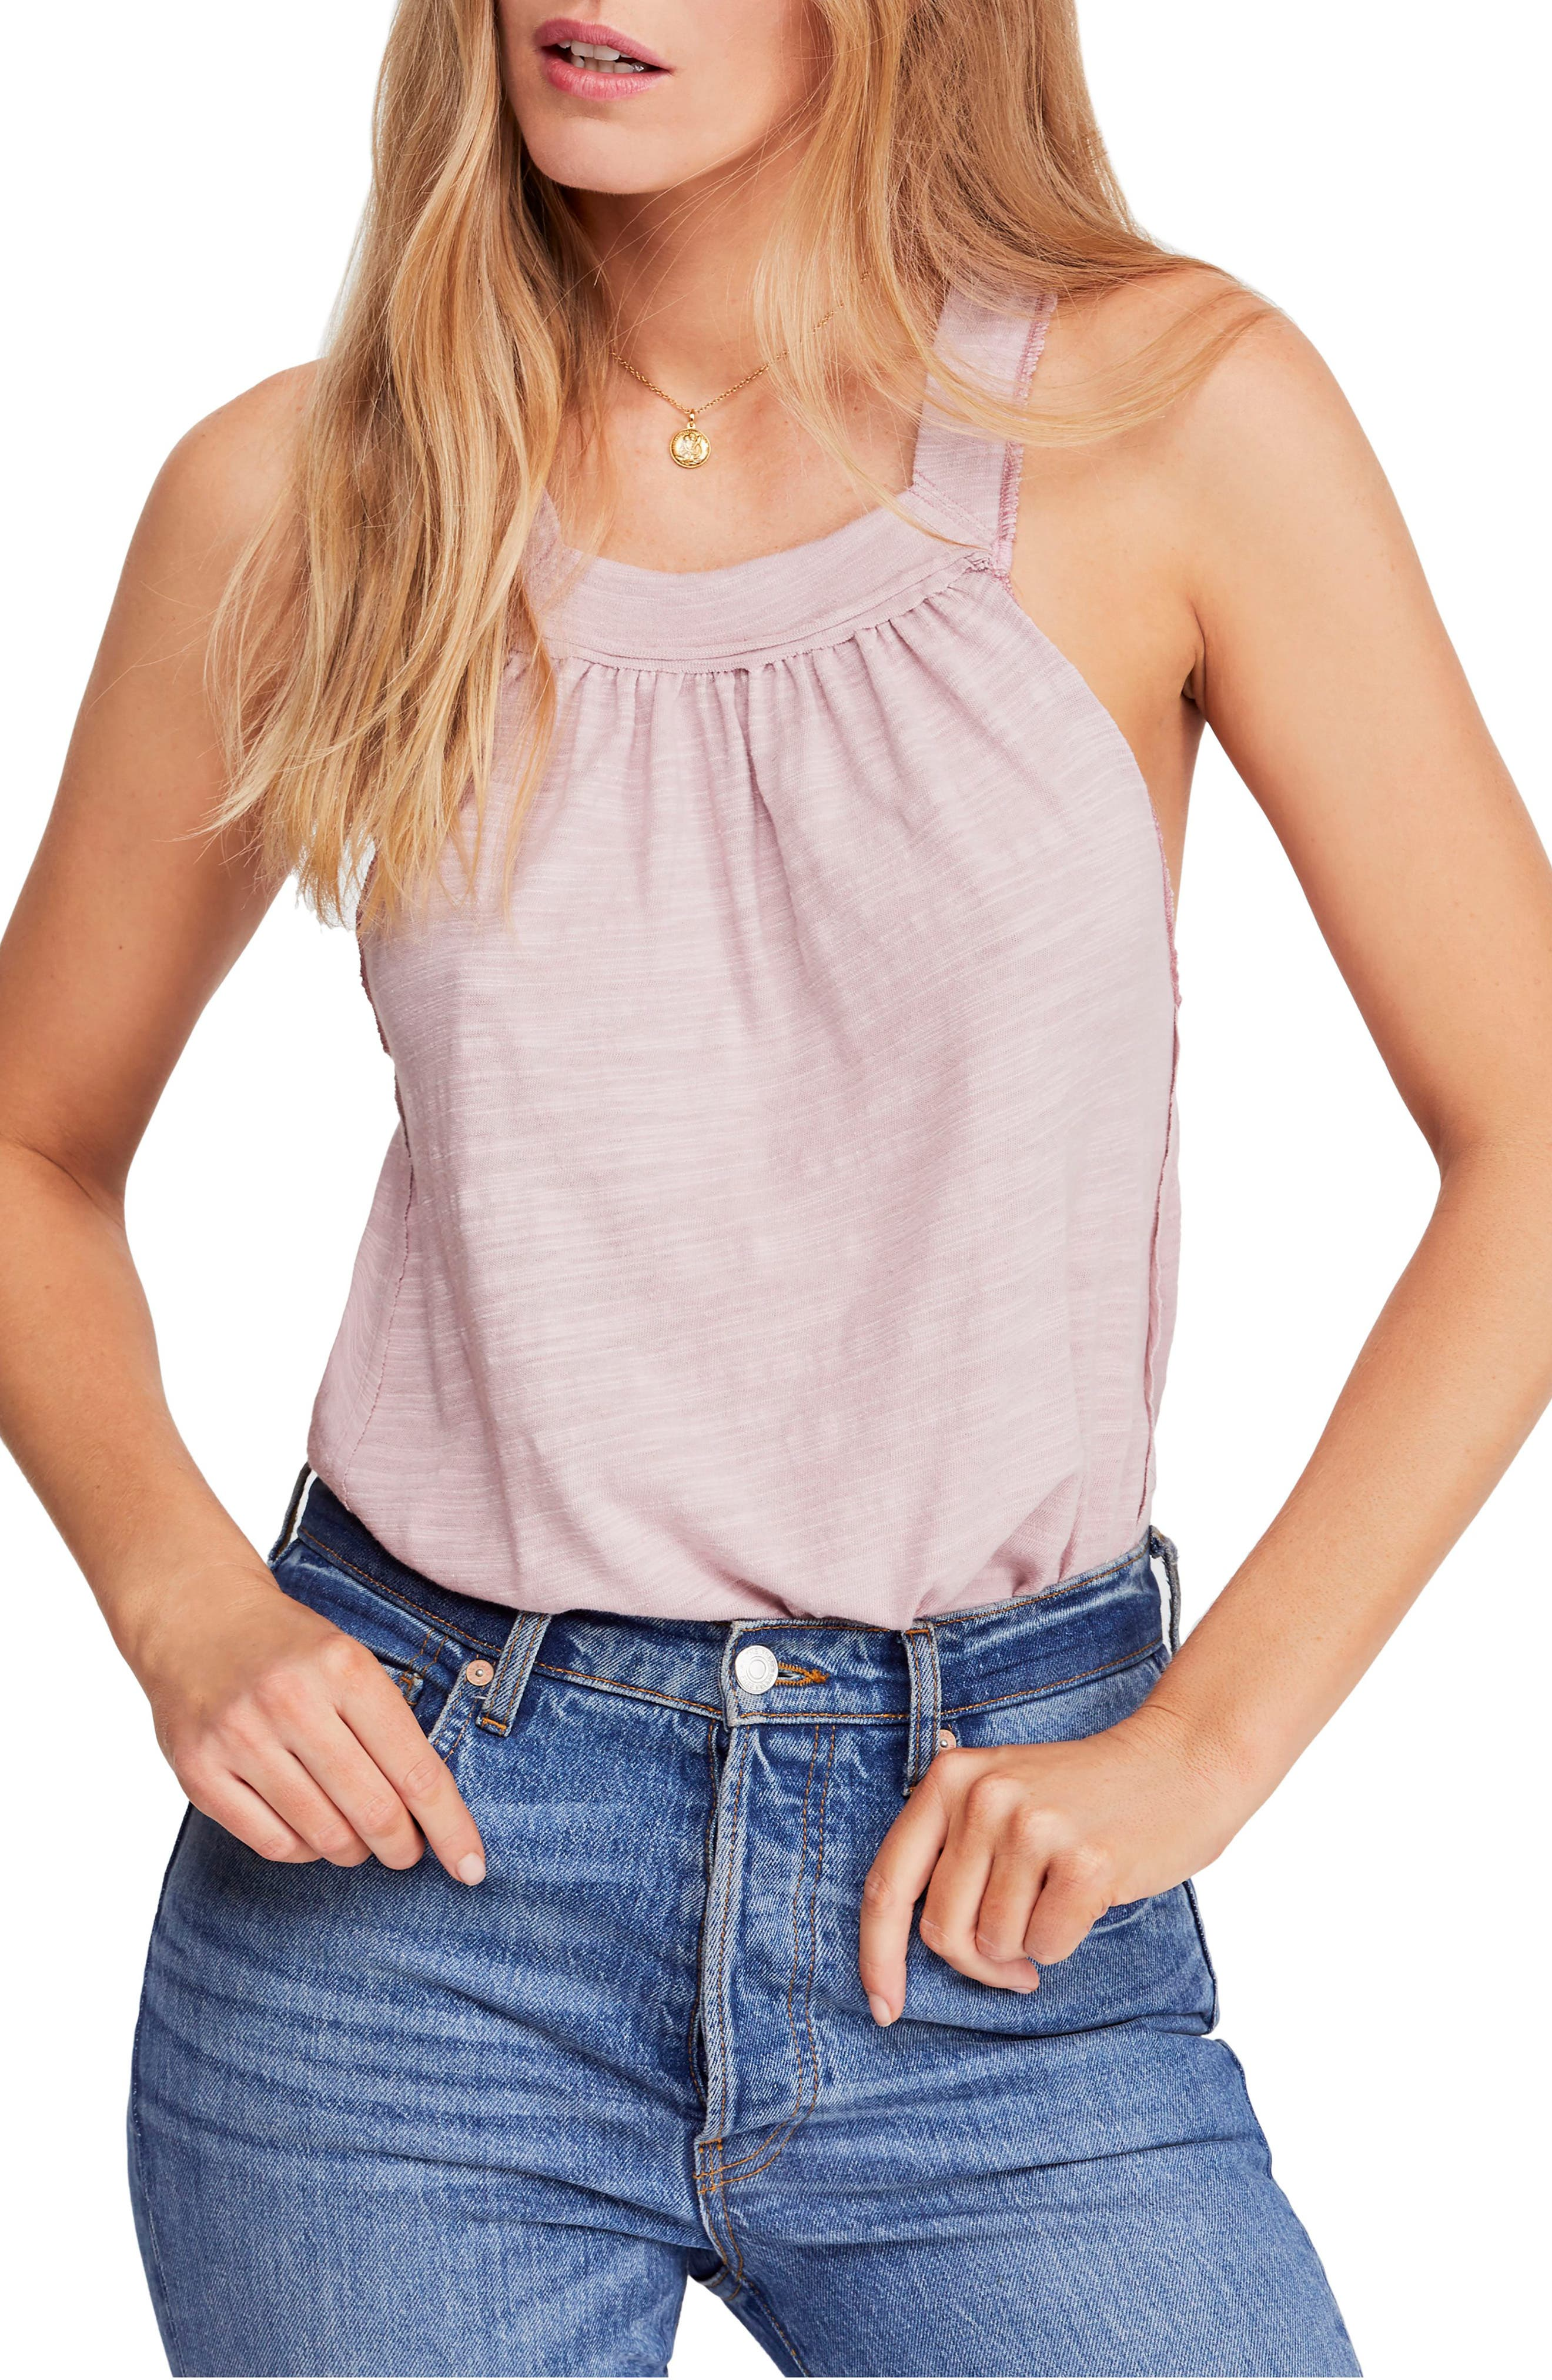 FREE PEOPLE, Good for You Tank, Main thumbnail 1, color, PINK